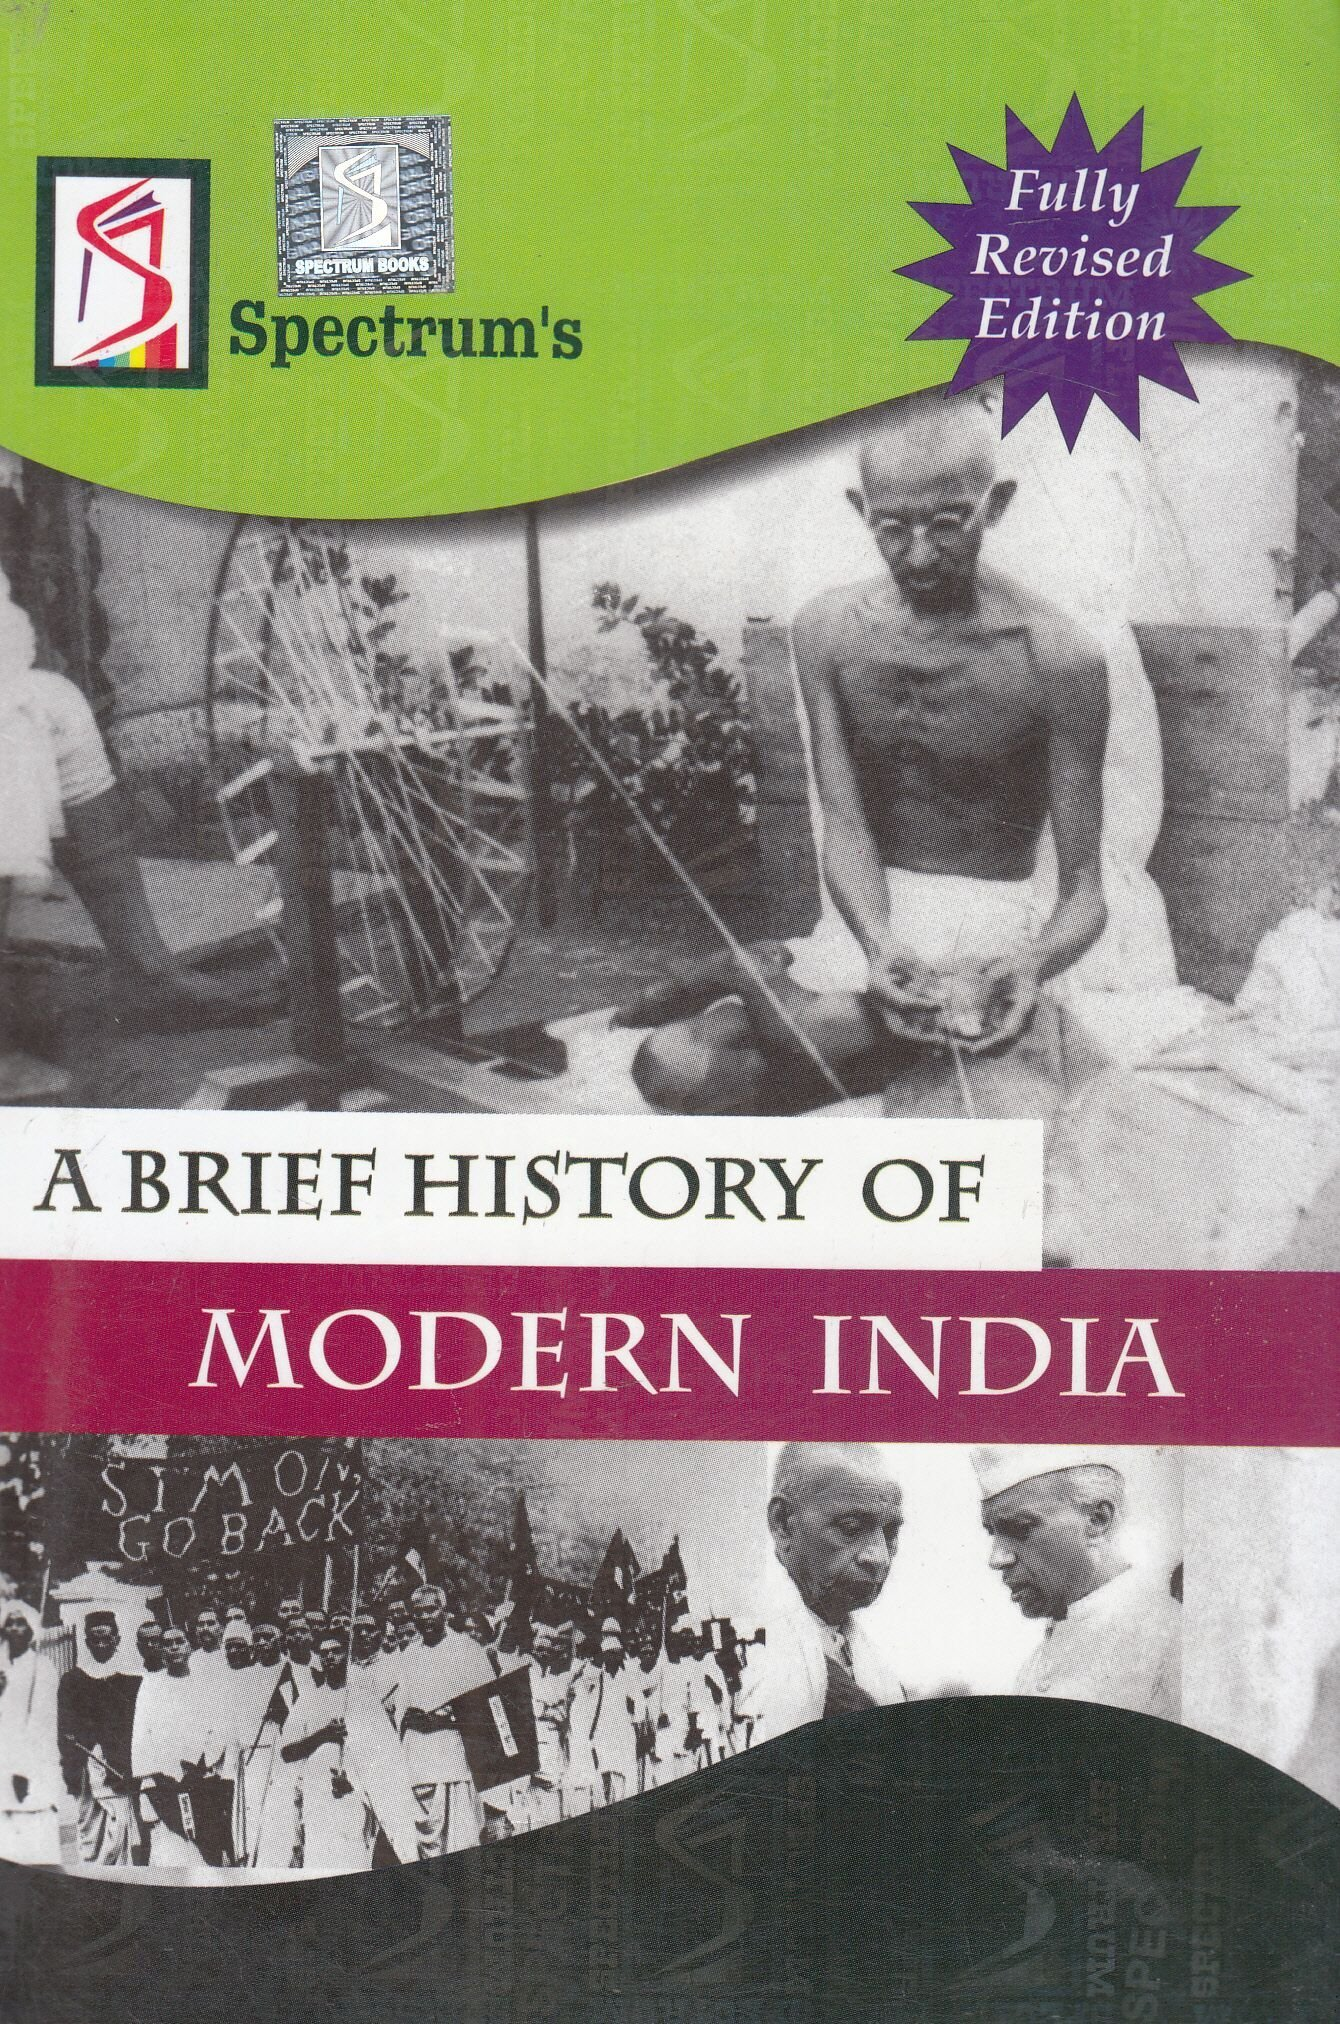 A Brief History of Modern India by Spectrum (Old Edition)